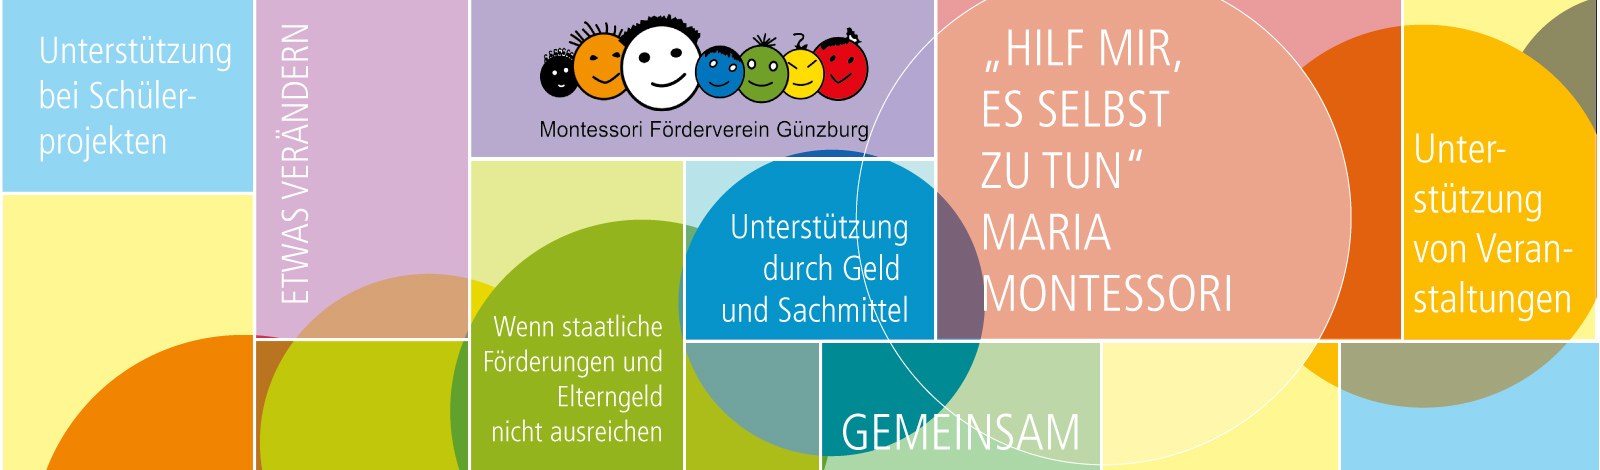 Montessori-Förderverein_Header